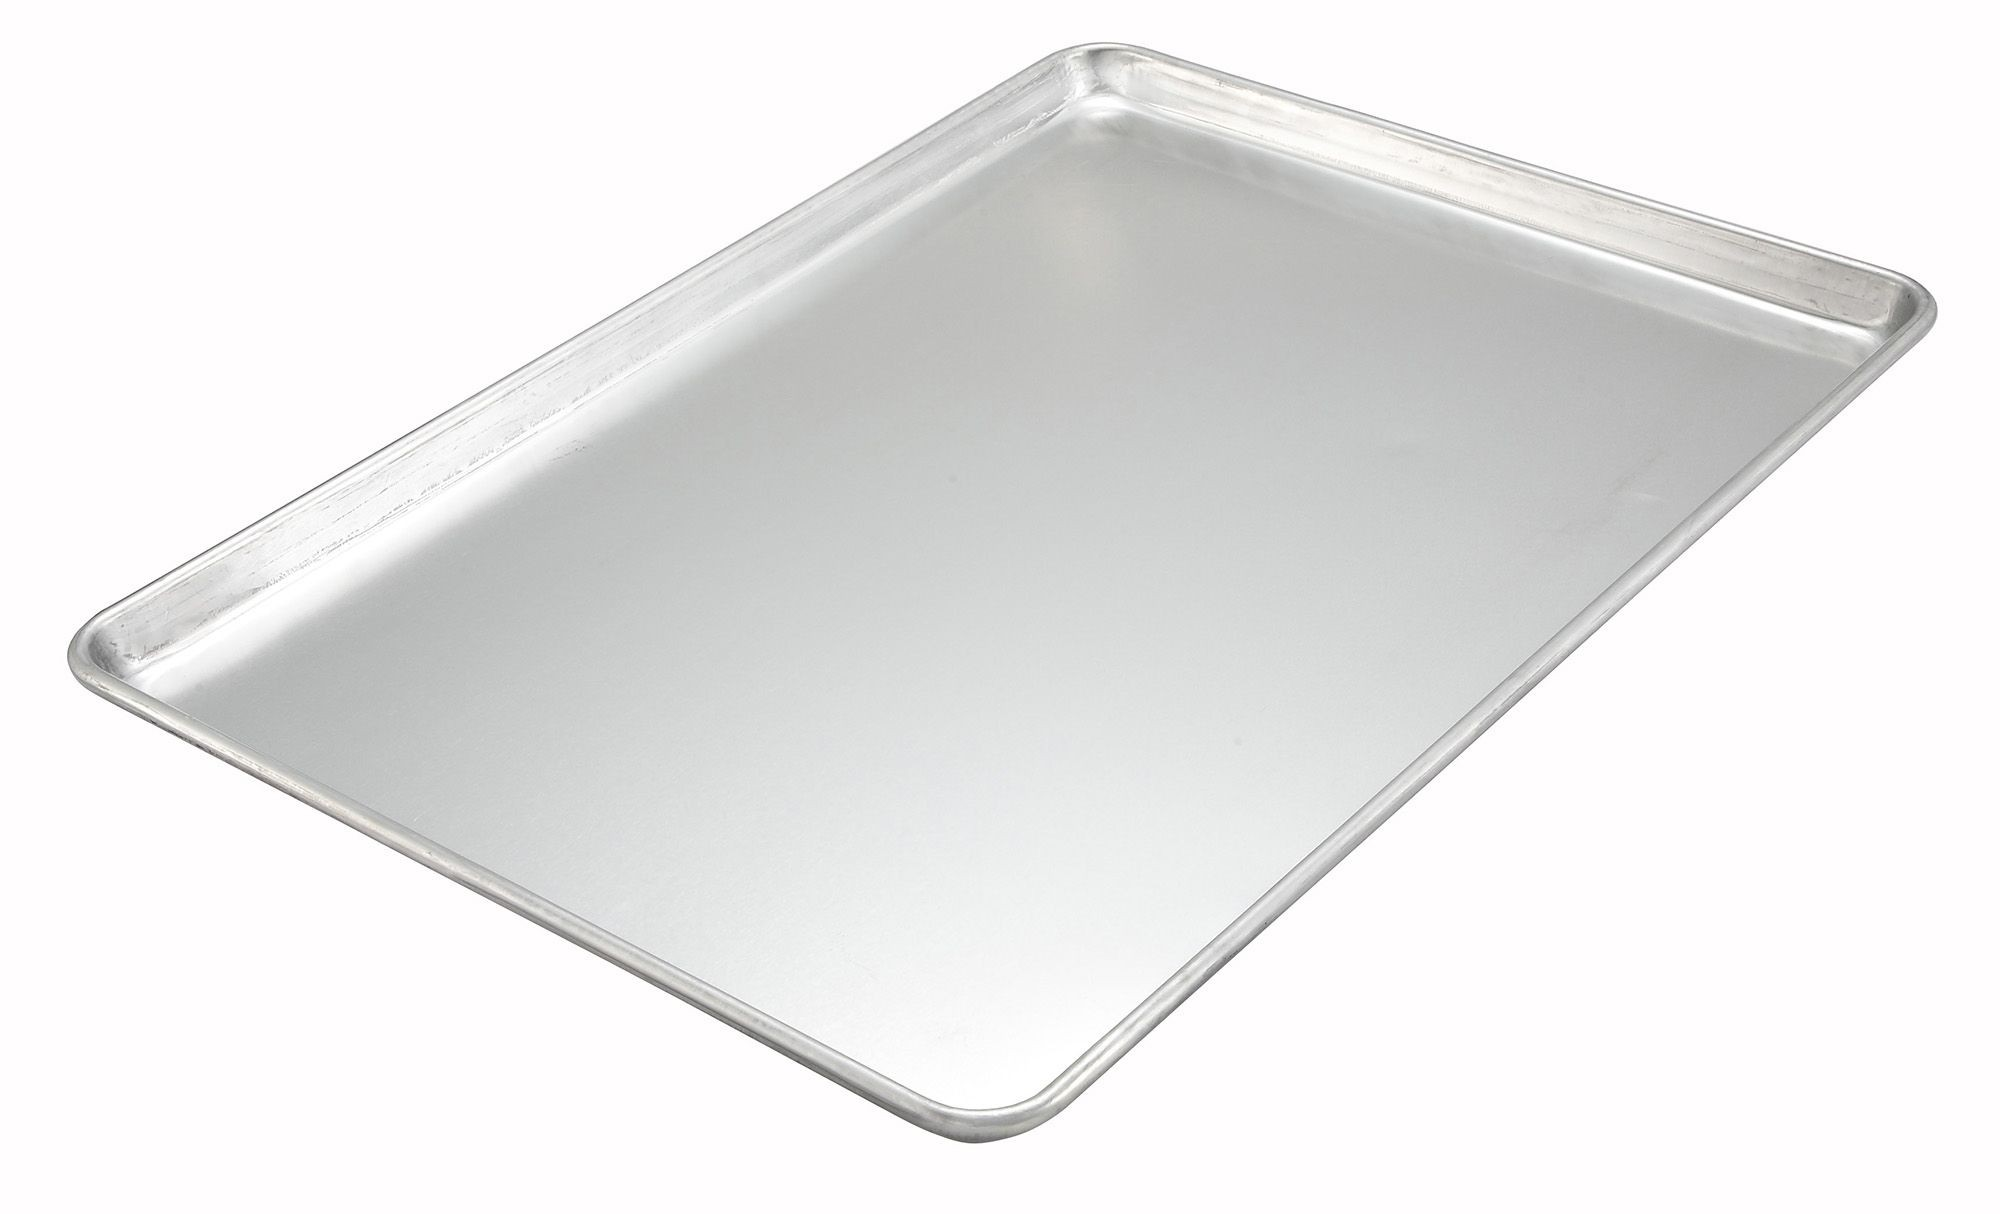 Full-Size 16-Gauge Aluminum Sheet Pan, 18